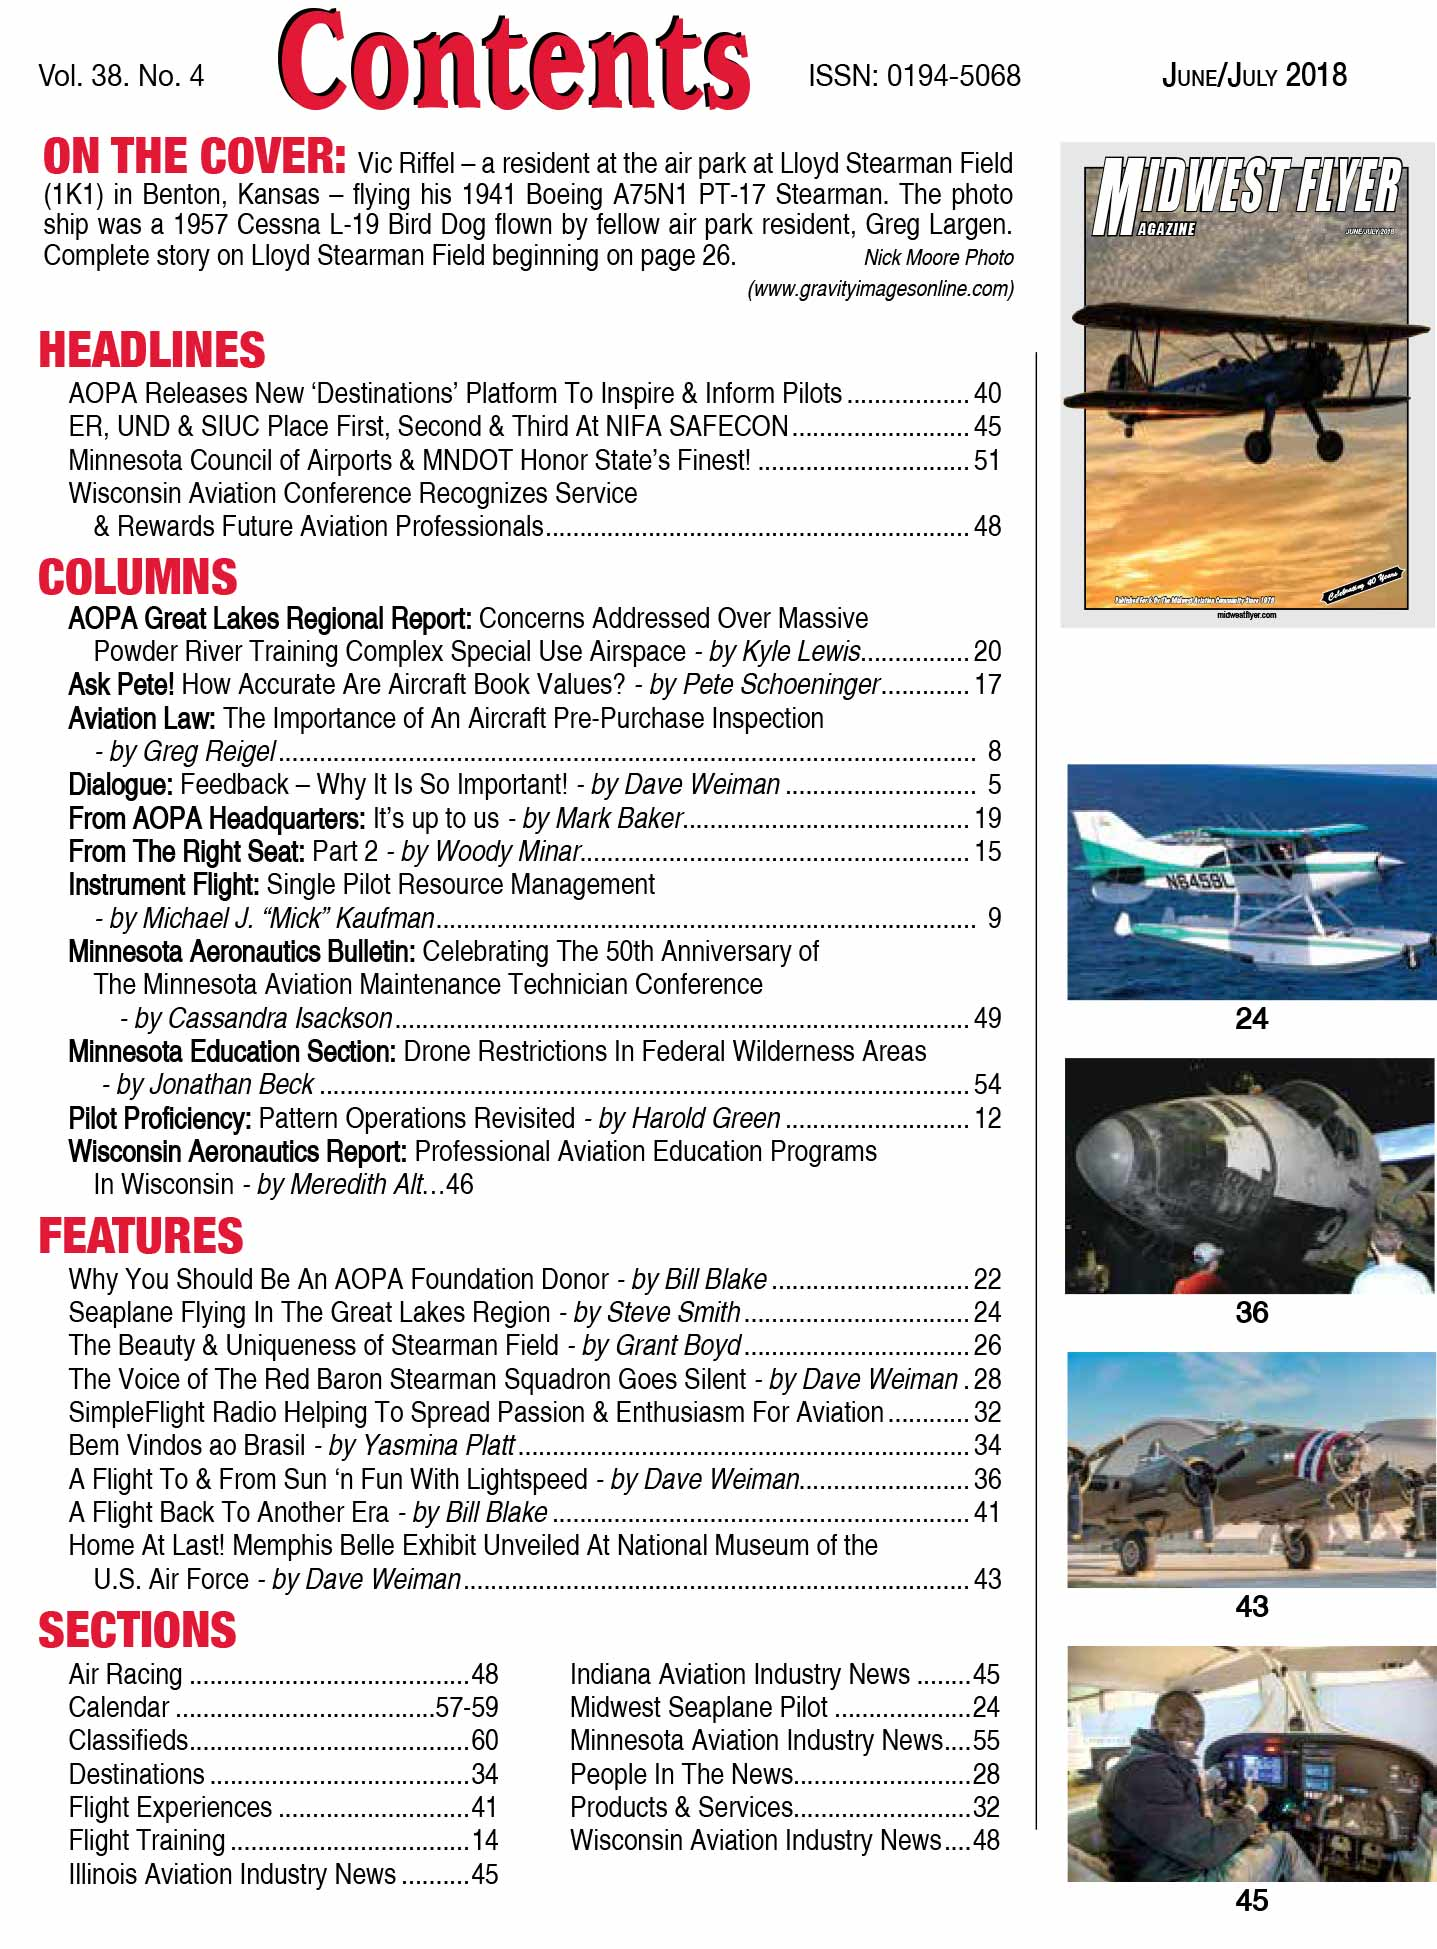 Midwest Flyer Magazine Contents - Jun/Jul